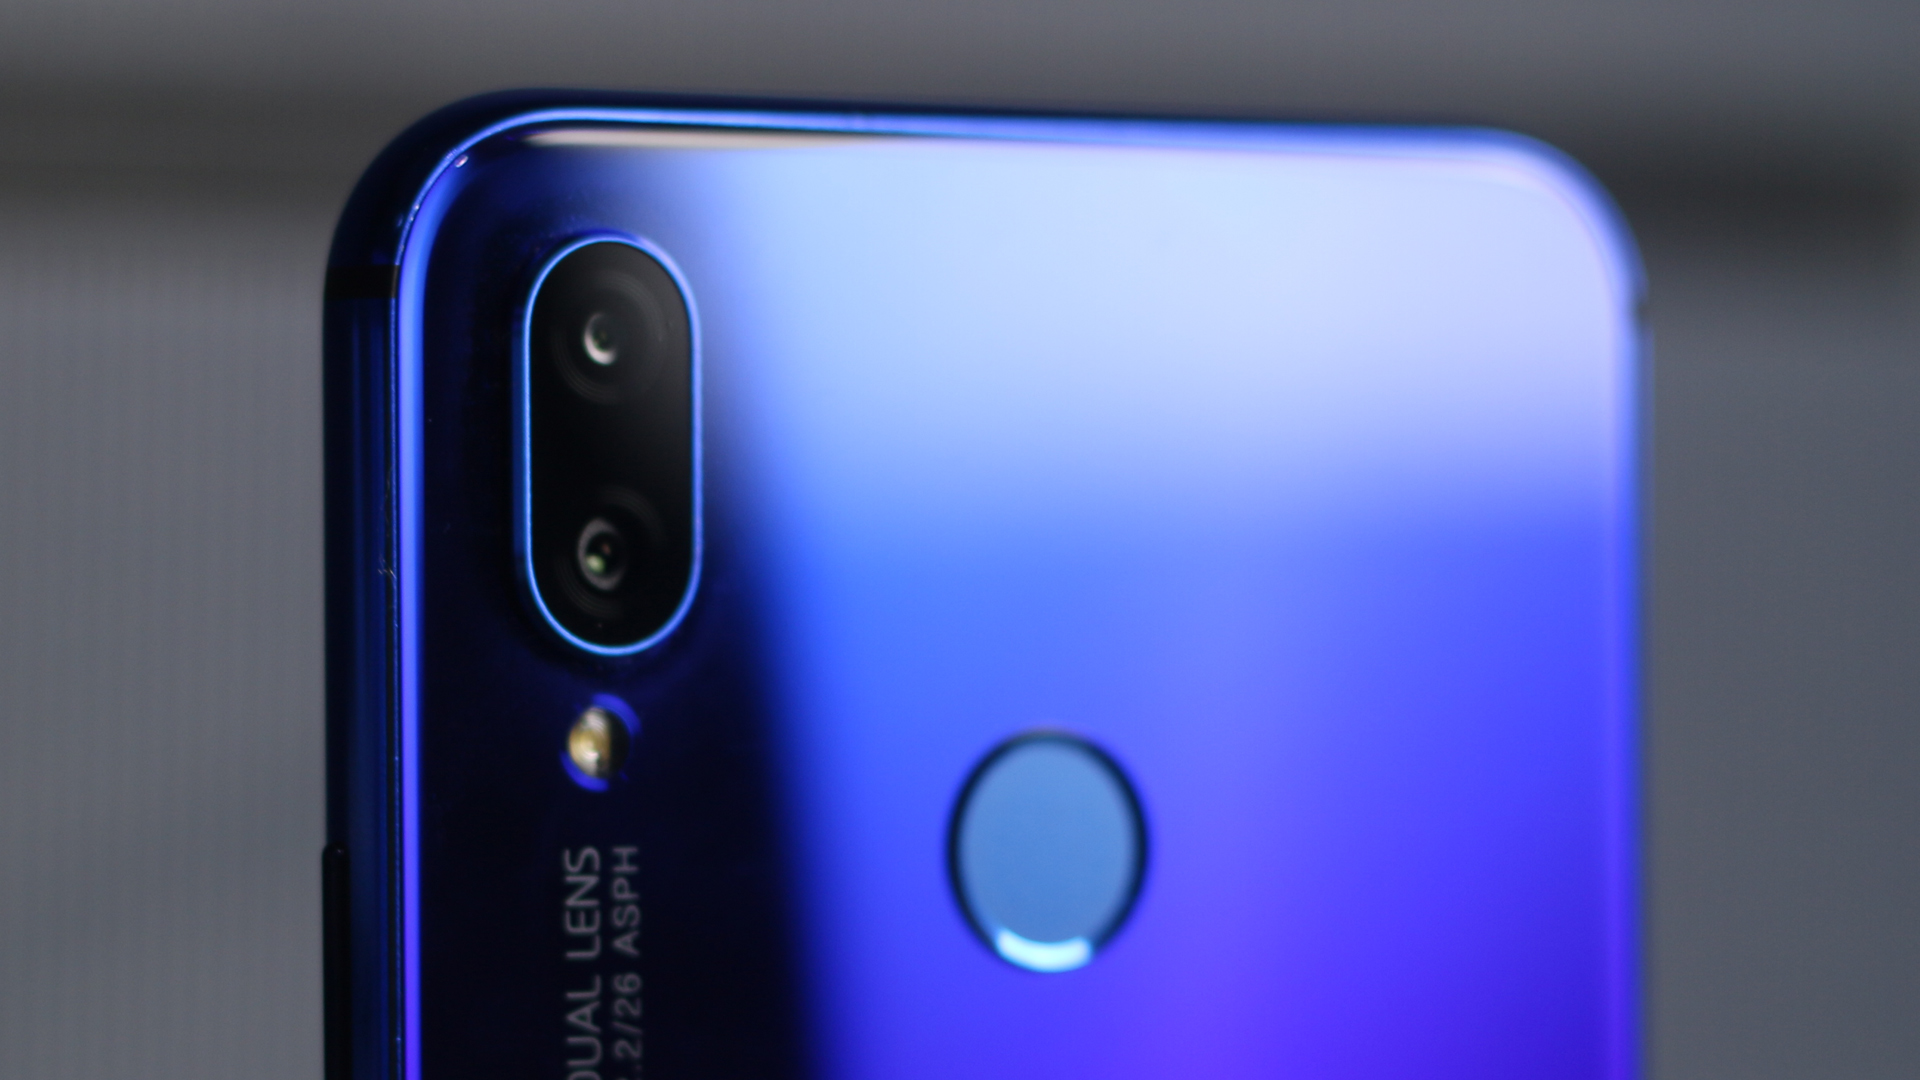 Huawei Nova 3i Review: Shining like the brightest star